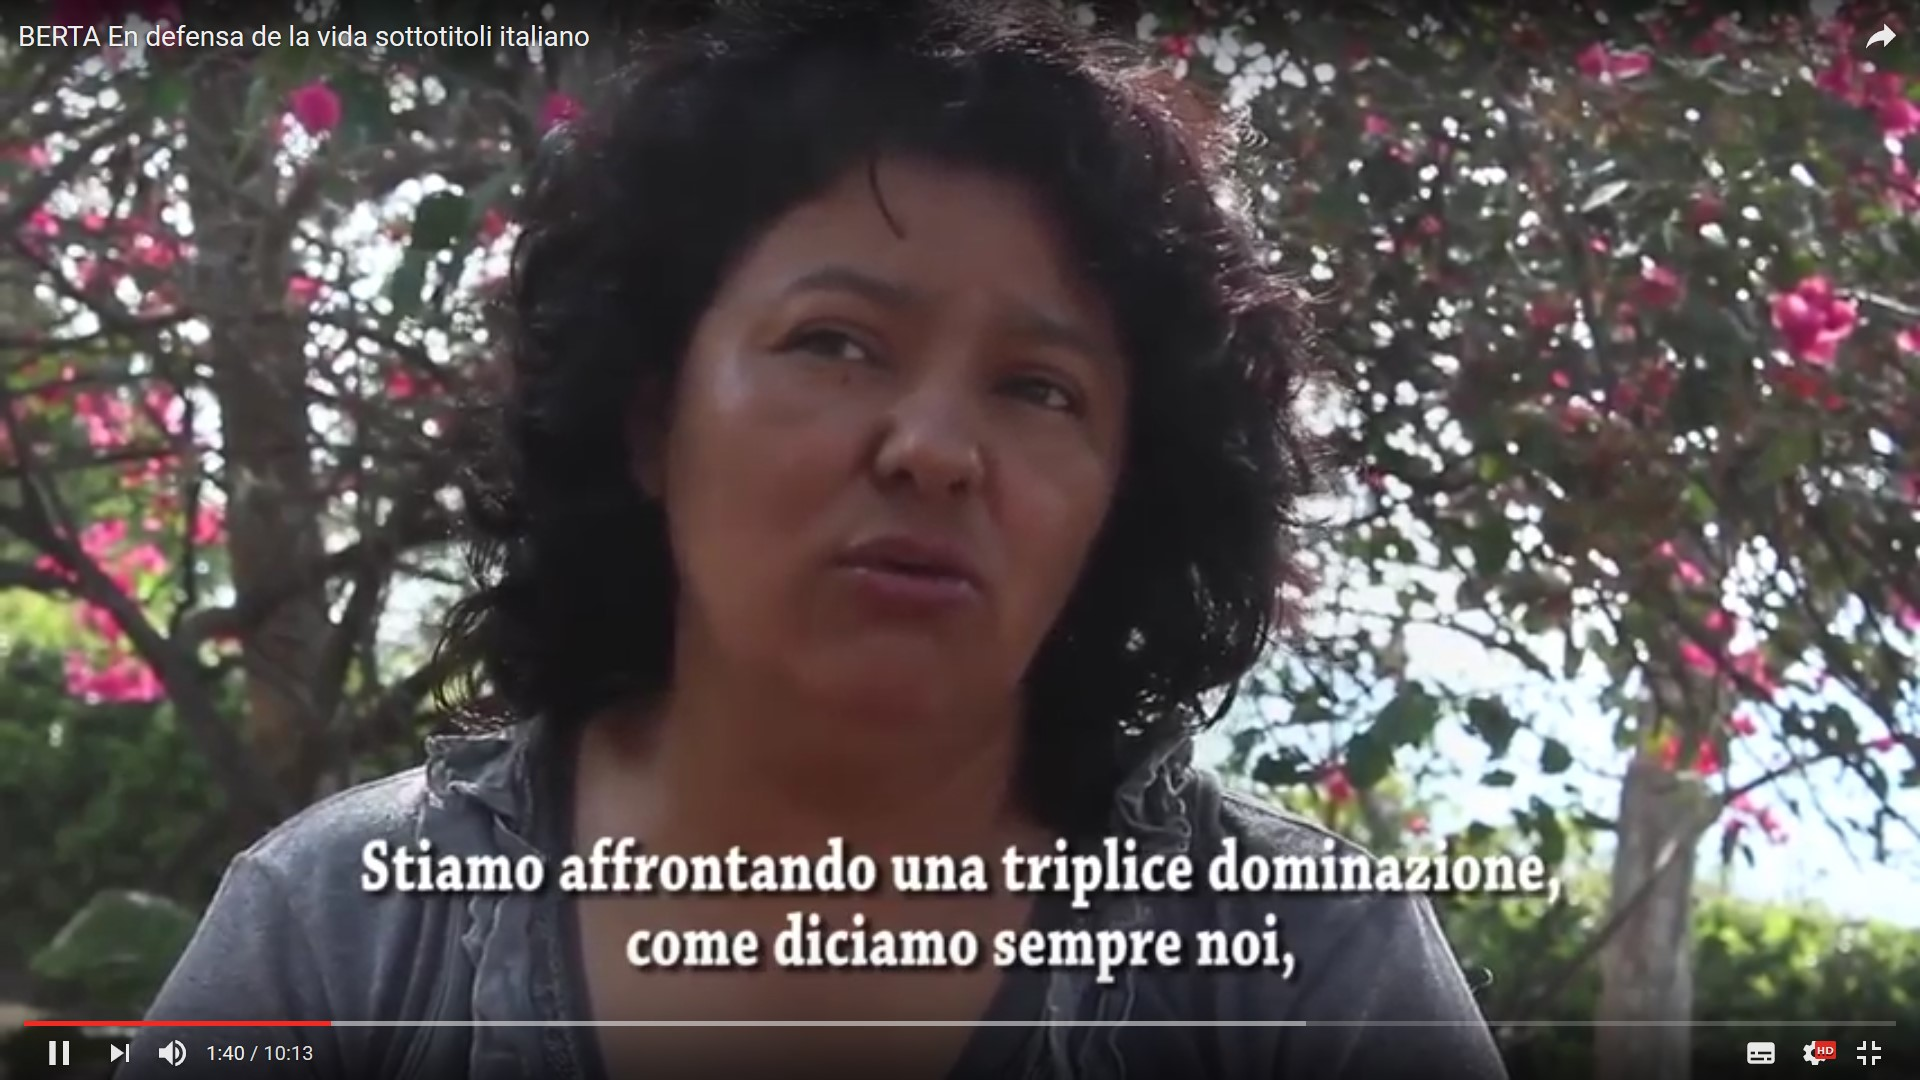 Video Berta en defensa de la vida